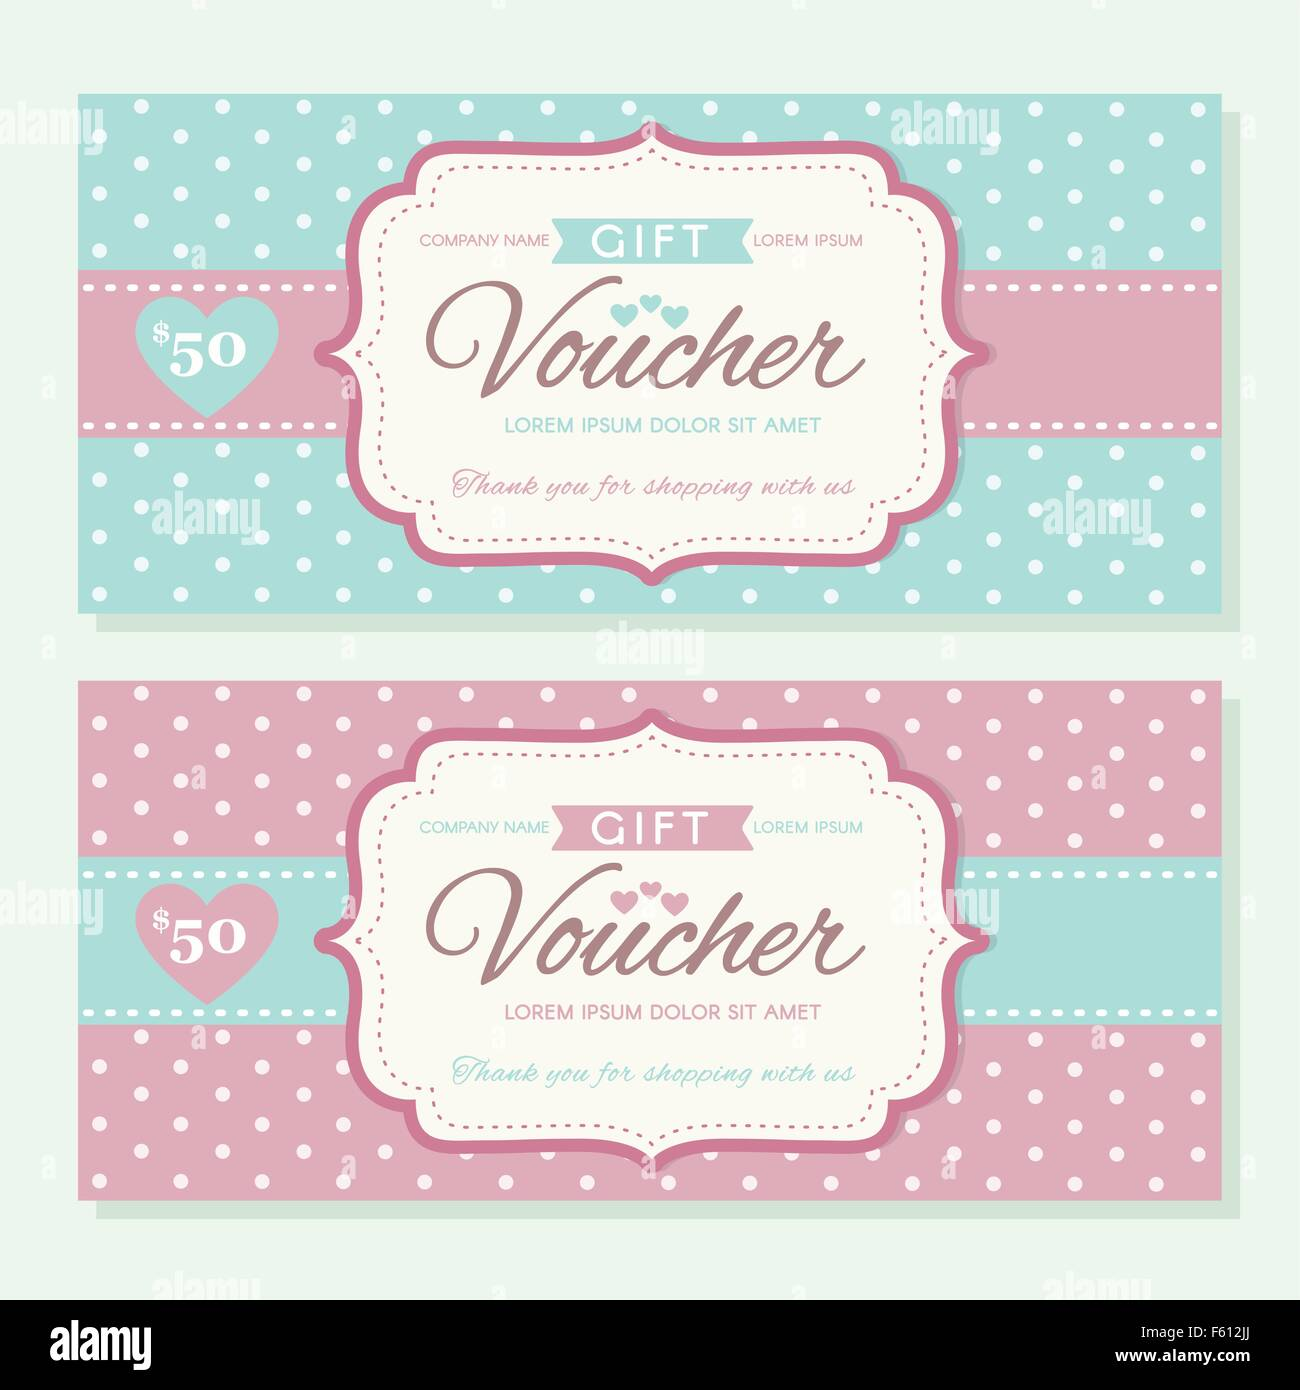 Elegant Gift Voucher Template With Polka Dot Background Stock Vector